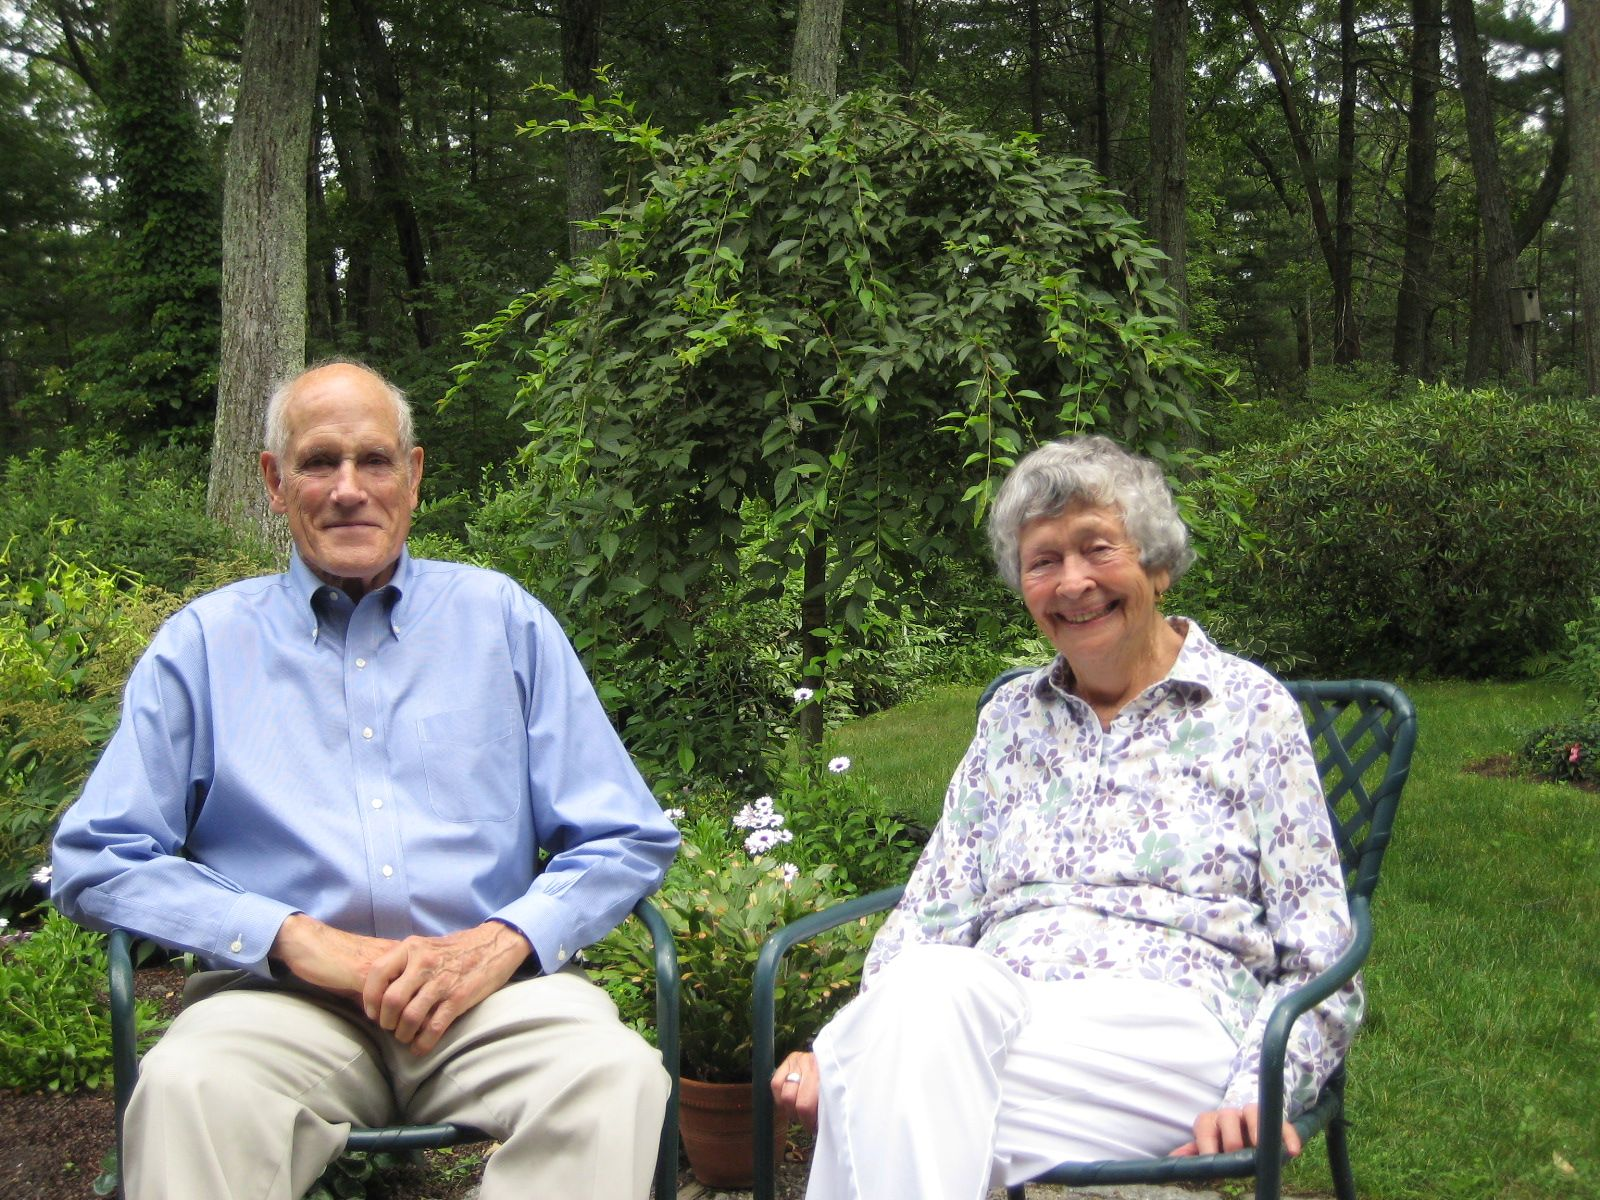 Fez and Jeanne Morse  on July 14, 2014 at their home in Lincoln, MA.